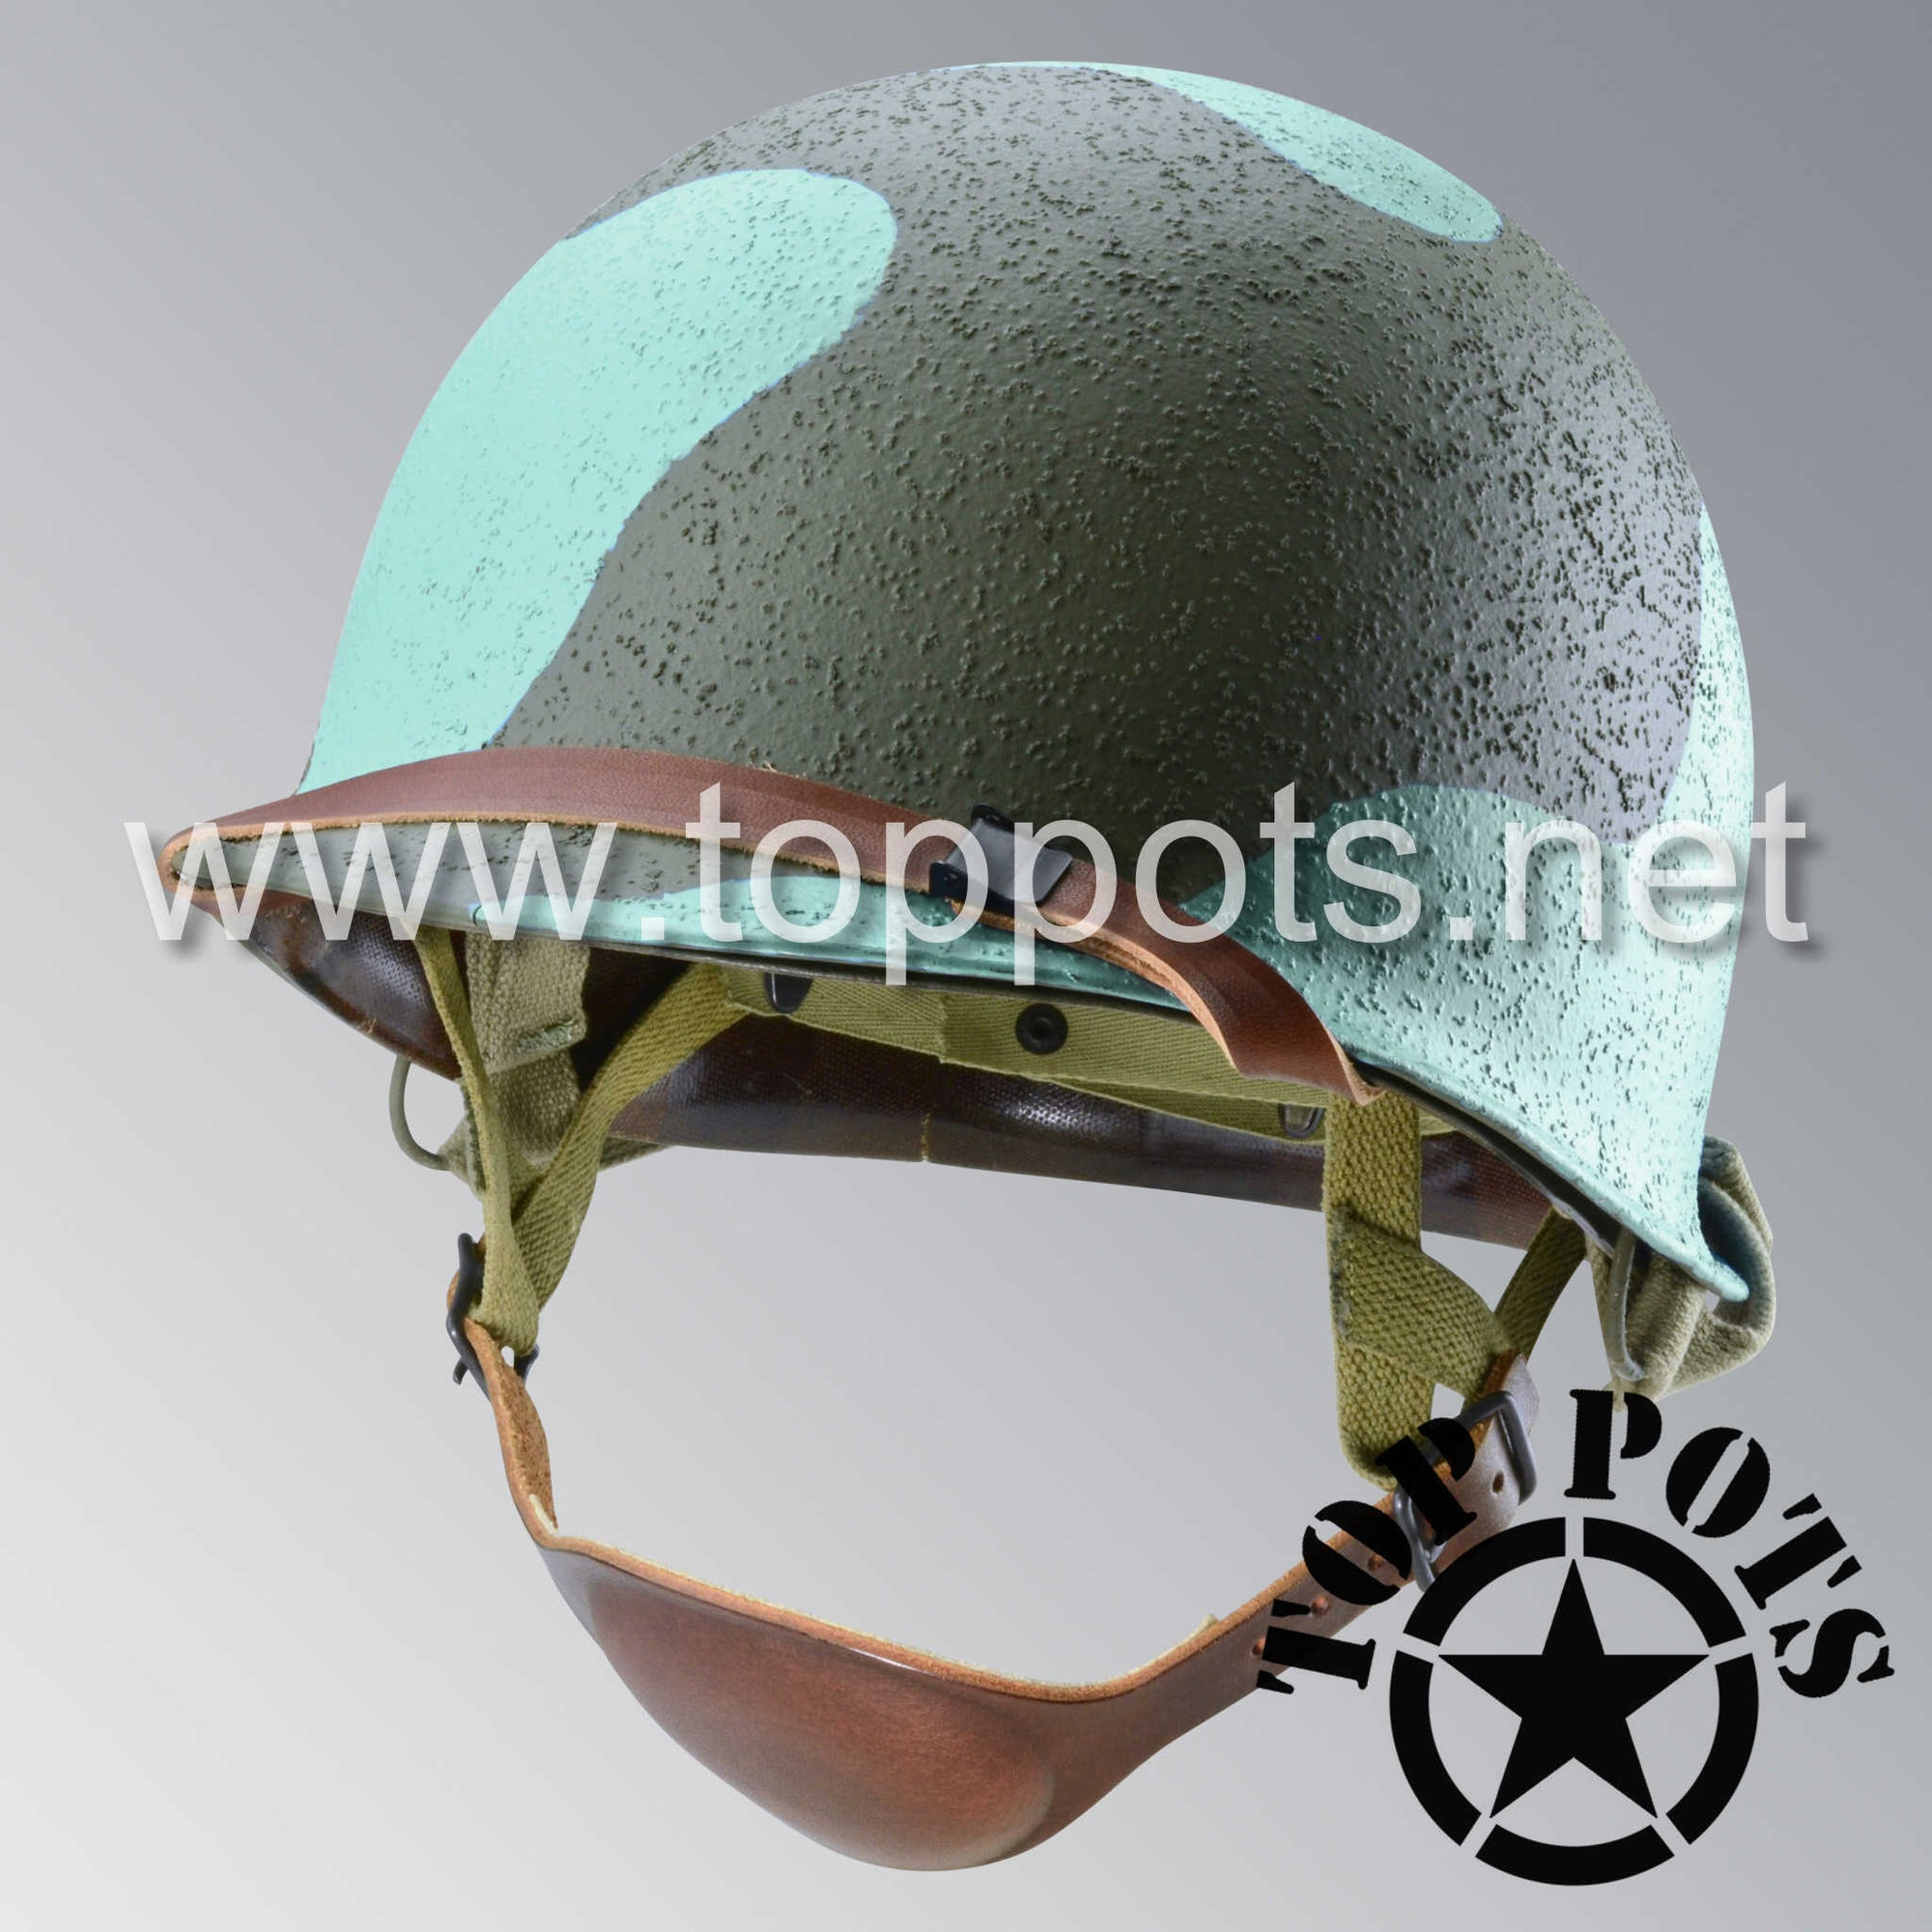 Image 1 of WWII USMC Marine Corps M2 Para Marine Paratrooper Airborne Helmet D Bale Shell and Liner with Pacific Water Camouflage Emblem - Sea Foam Blue